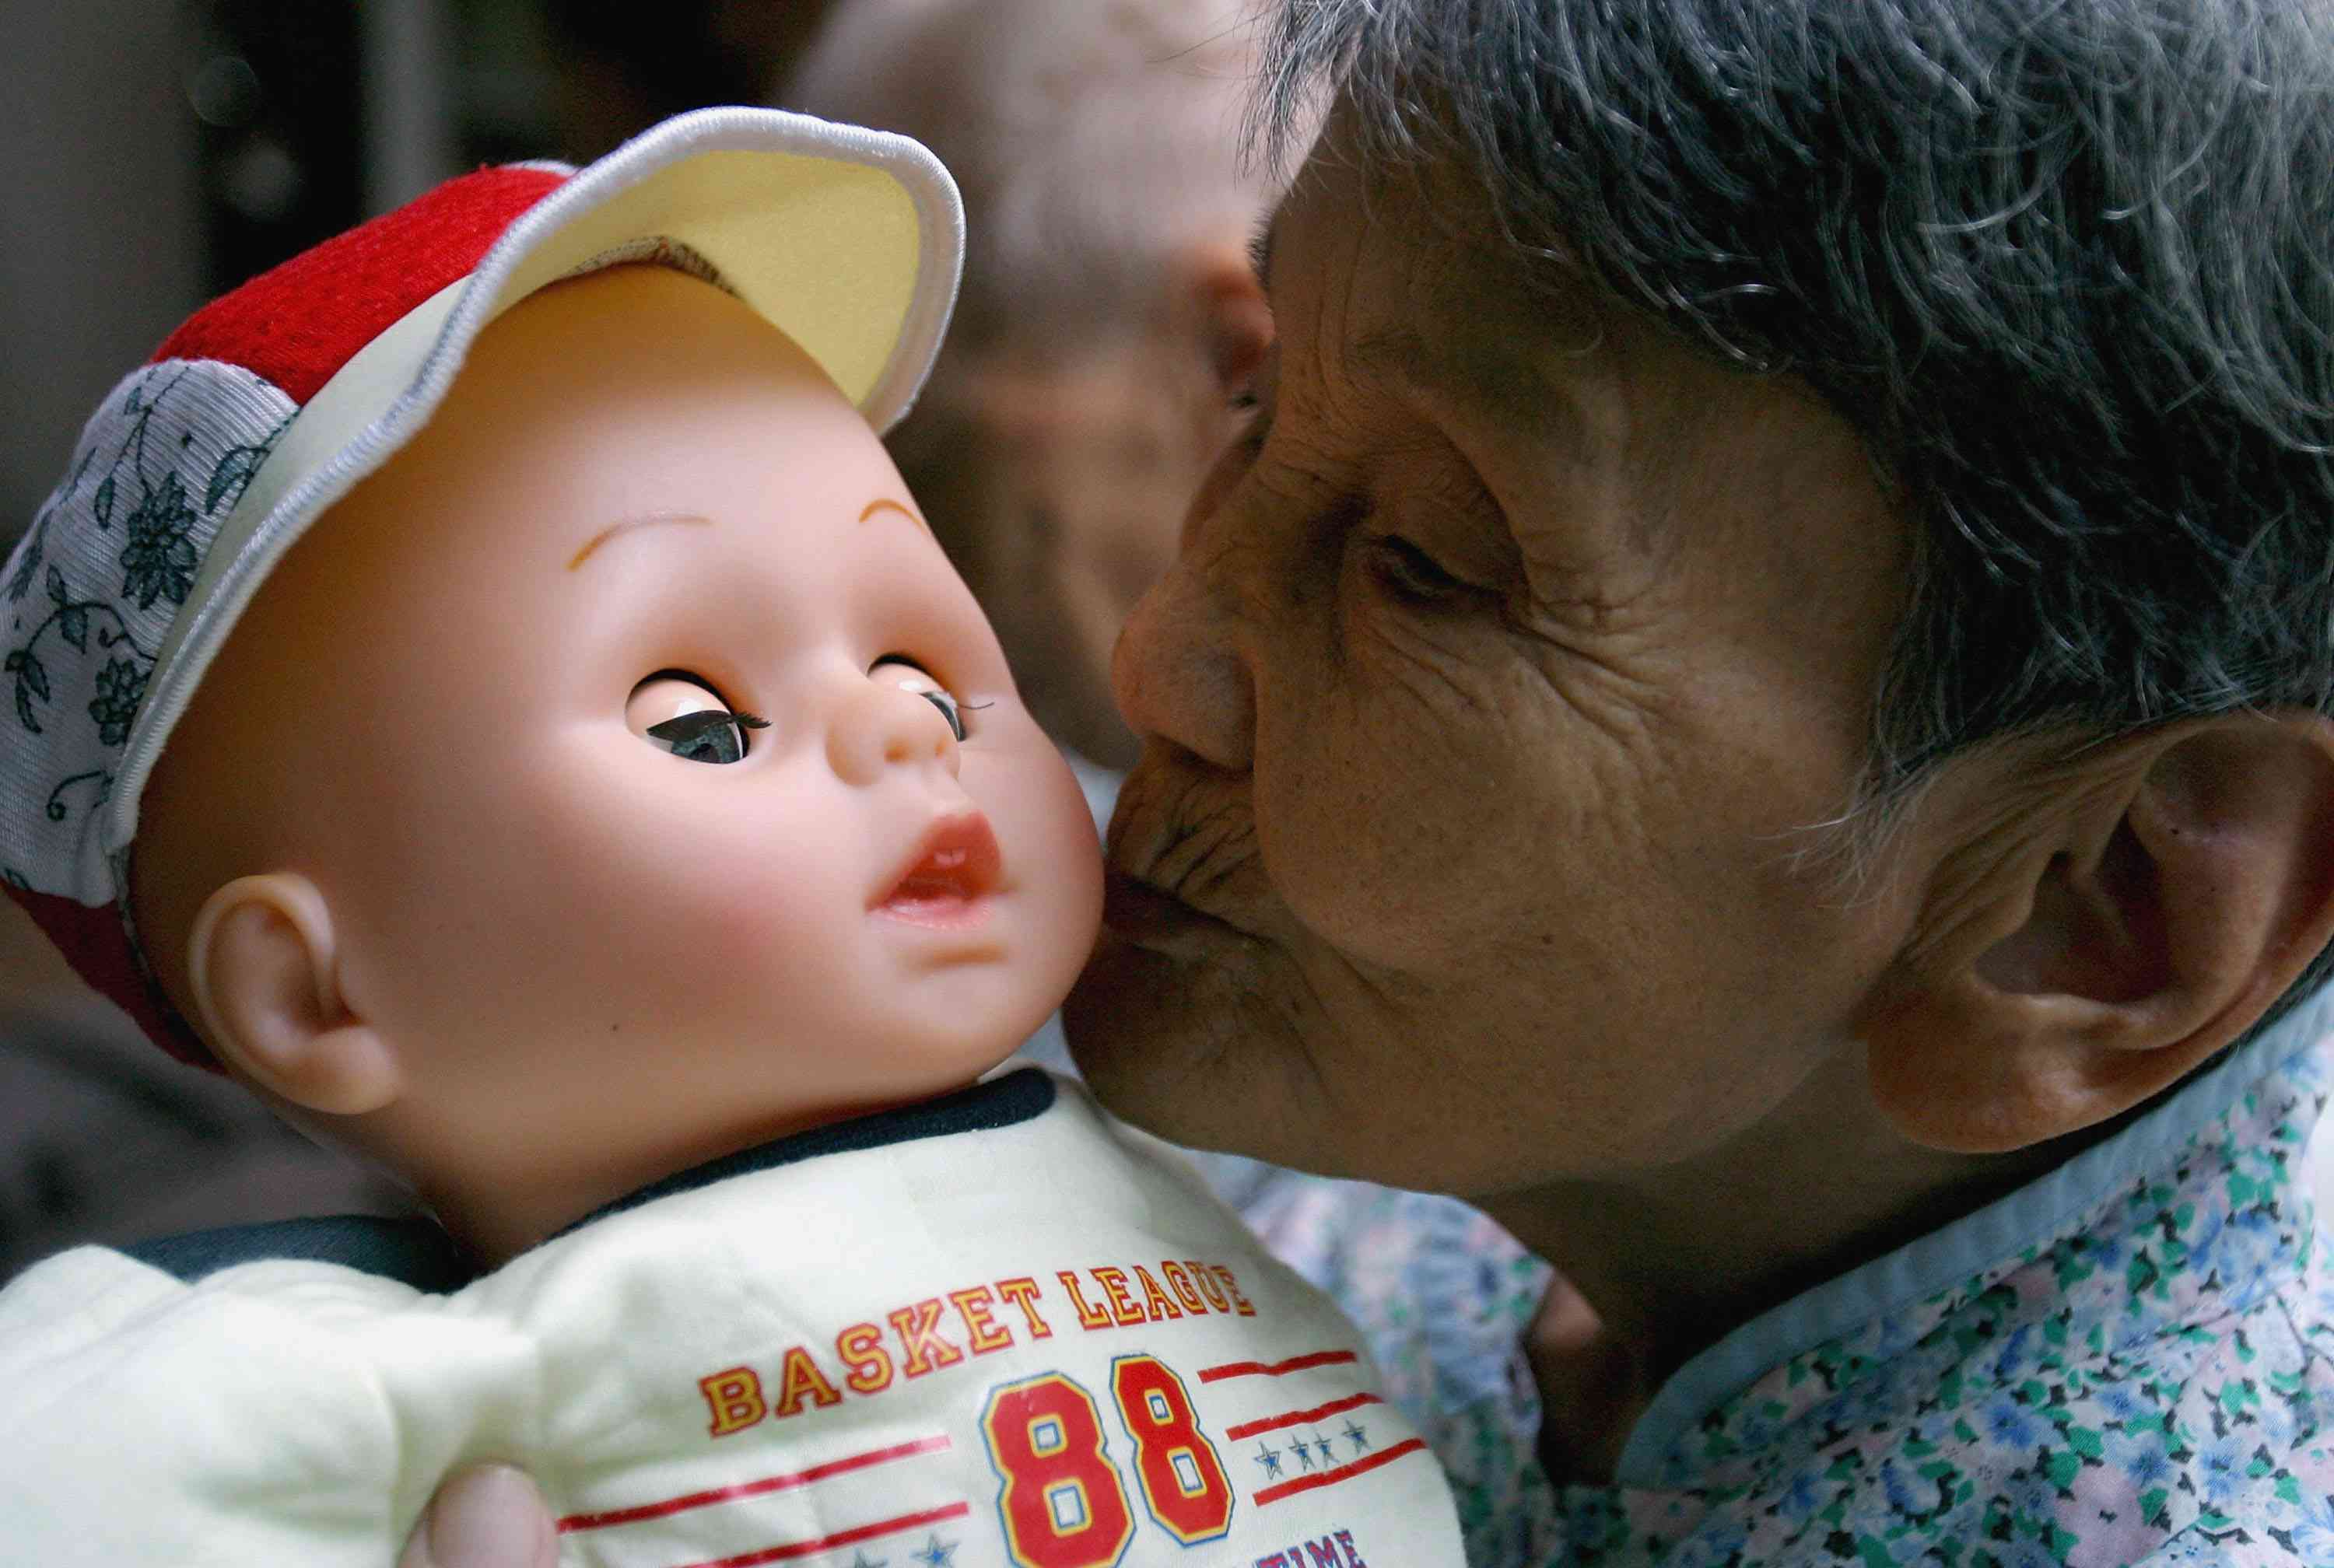 A woman with dementia and her baby doll